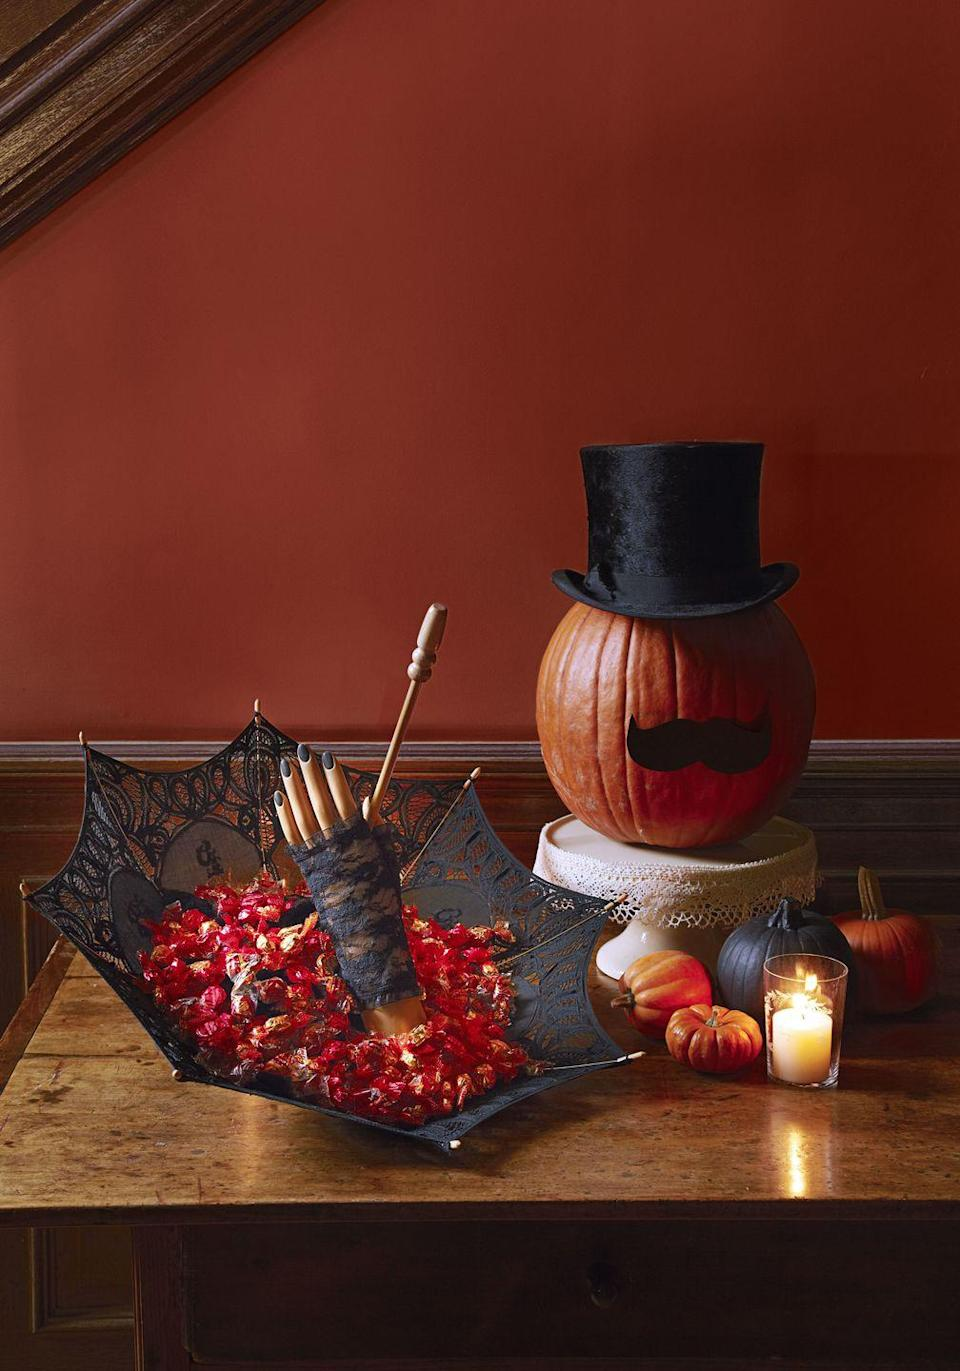 "<p>A top hat and paper mustache make for one fancy jack-o'-lantern — no scooping, carving or painting required. Prop the squash on a <a href=""https://www.amazon.com/Gracie-China-Victorian-Porcelain-Pedestal/dp/B004EBU50Q?tag=syn-yahoo-20&ascsubtag=%5Bartid%7C10055.g.1714%5Bsrc%7Cyahoo-us"" rel=""nofollow noopener"" target=""_blank"" data-ylk=""slk:cake stand"" class=""link rapid-noclick-resp"">cake stand</a> for an extra-dignified perch.</p><p><a class=""link rapid-noclick-resp"" href=""https://www.amazon.com/Black-Magician-Costume-Funny-Party/dp/B007ZFXDLG?tag=syn-yahoo-20&ascsubtag=%5Bartid%7C10055.g.1714%5Bsrc%7Cyahoo-us"" rel=""nofollow noopener"" target=""_blank"" data-ylk=""slk:SHOP TOP HATS"">SHOP TOP HATS</a><br></p>"